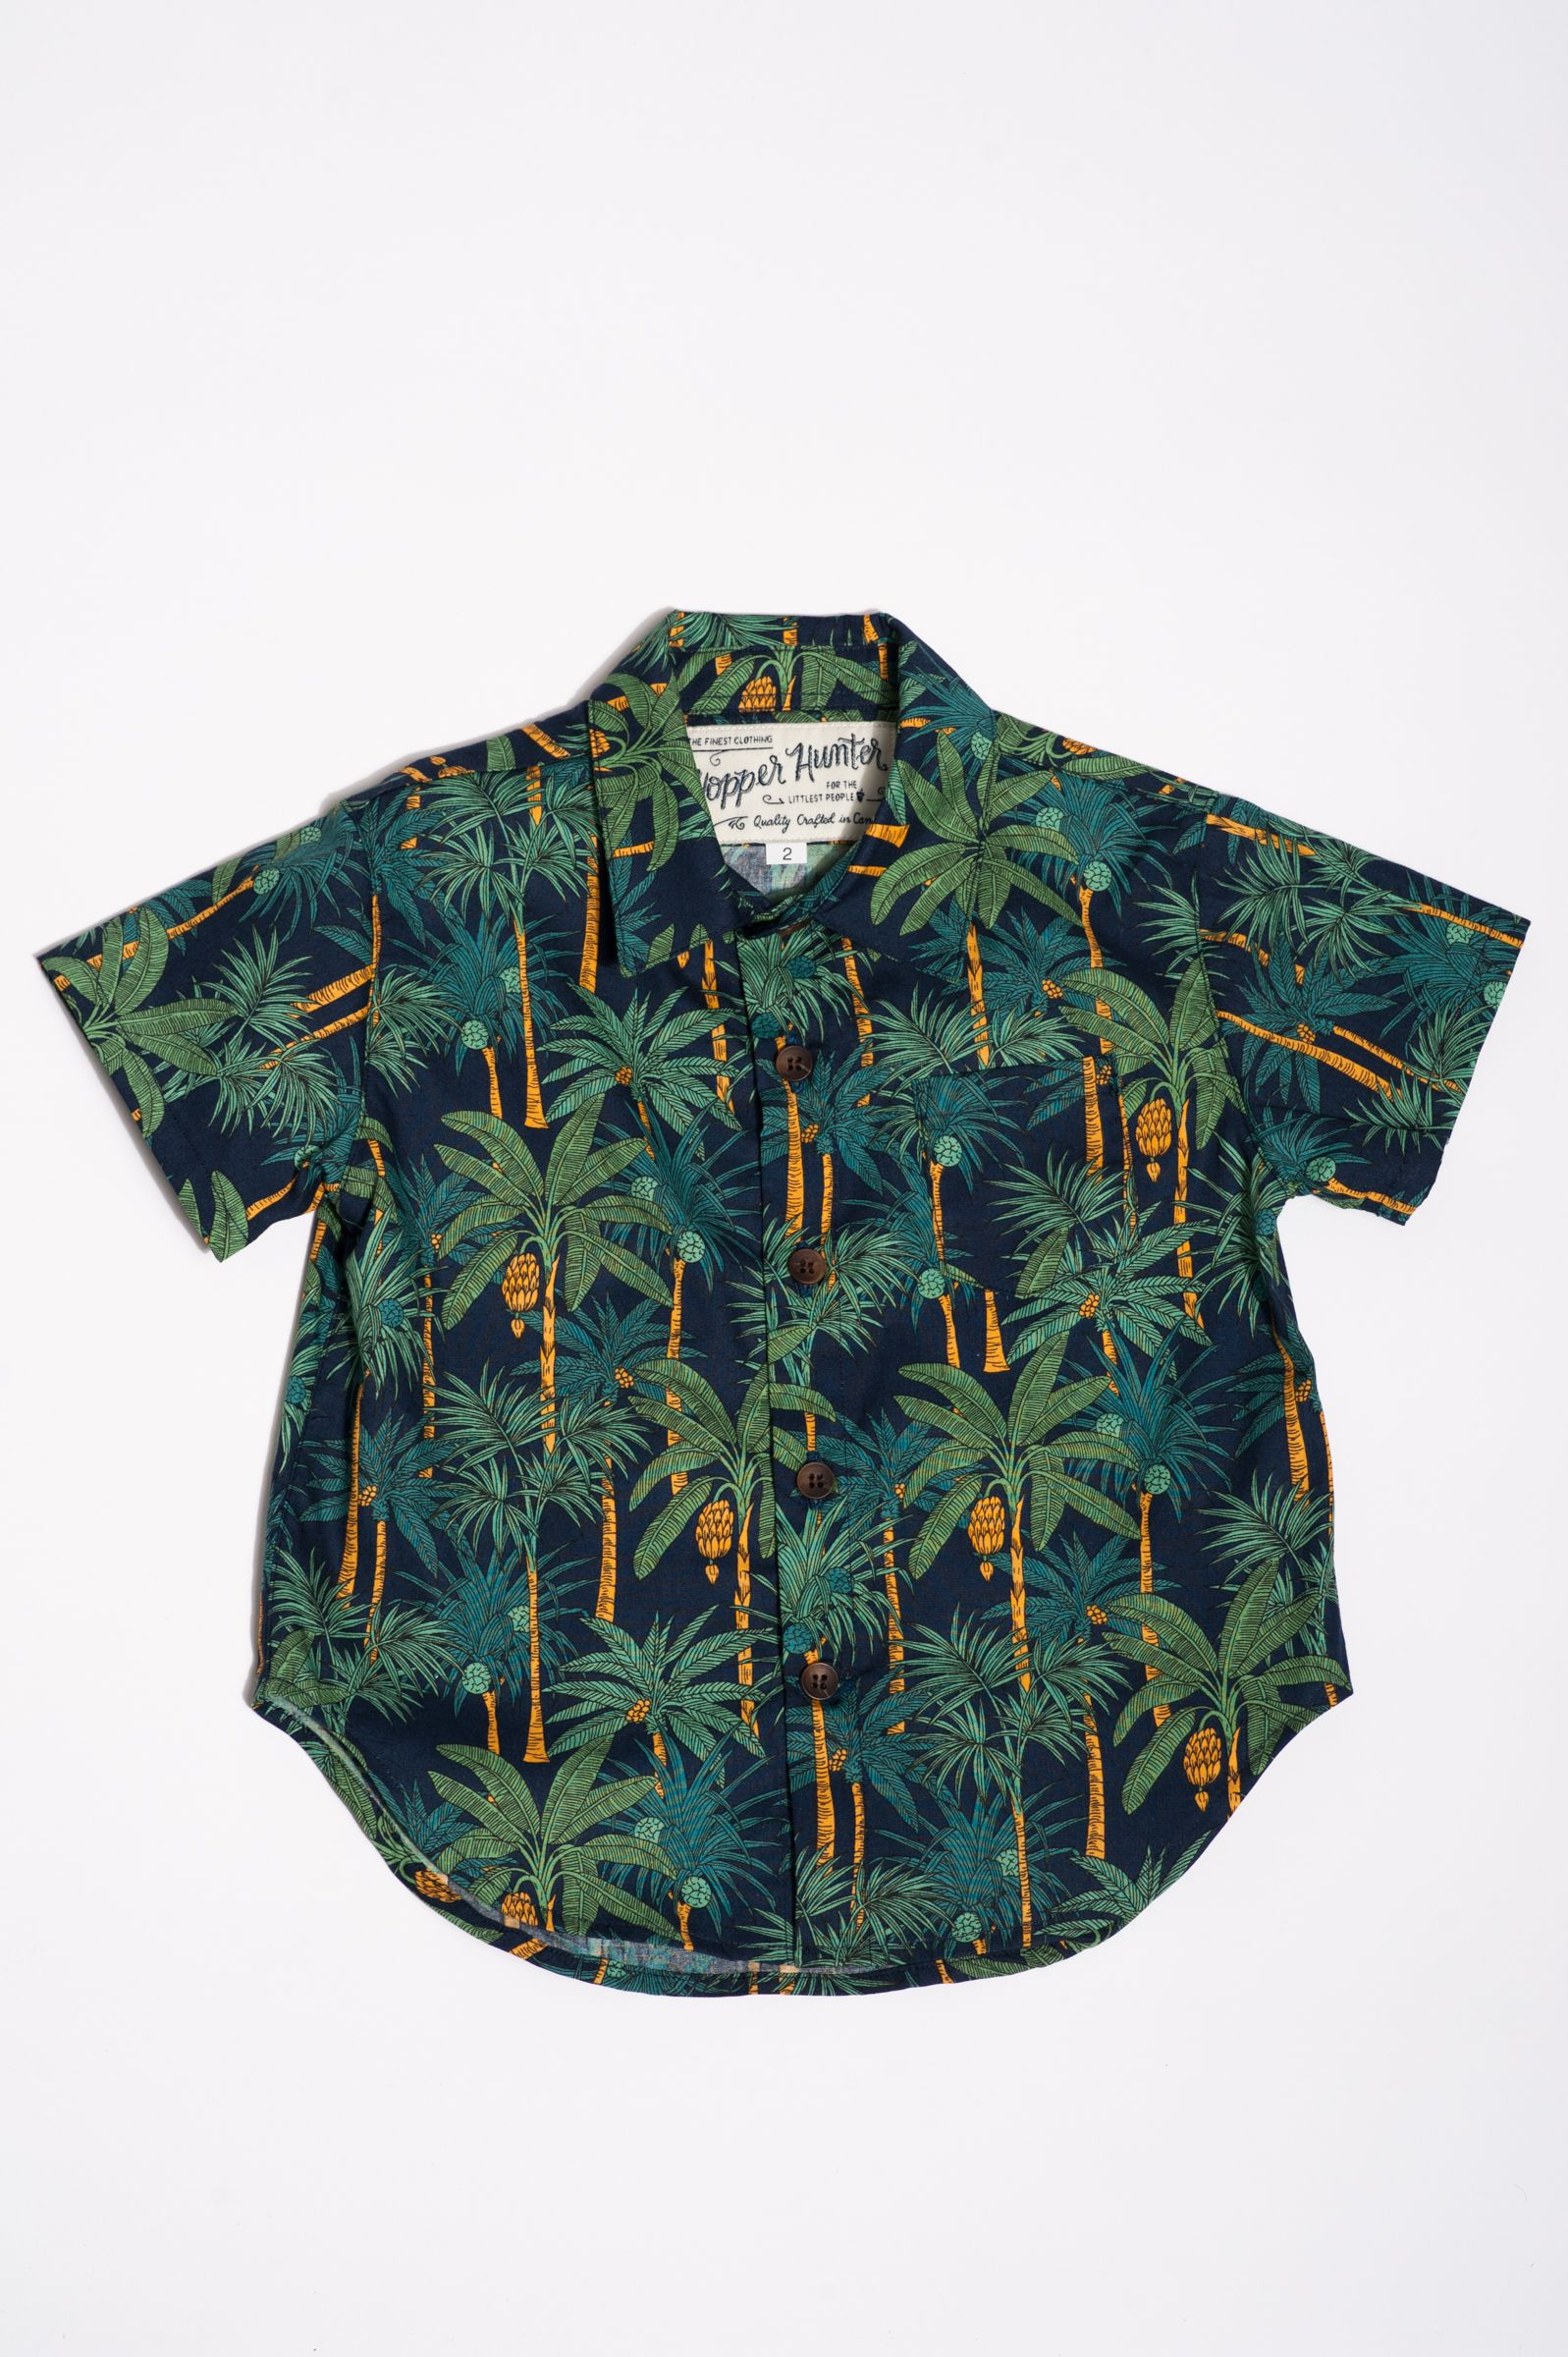 The Short Sleeve Hopper Shirt | Navy Palms https://18waits.com/collections/spring-summer-2017/products/hopper-hunter-short-sleeve-hopper-shirt-navy-palms